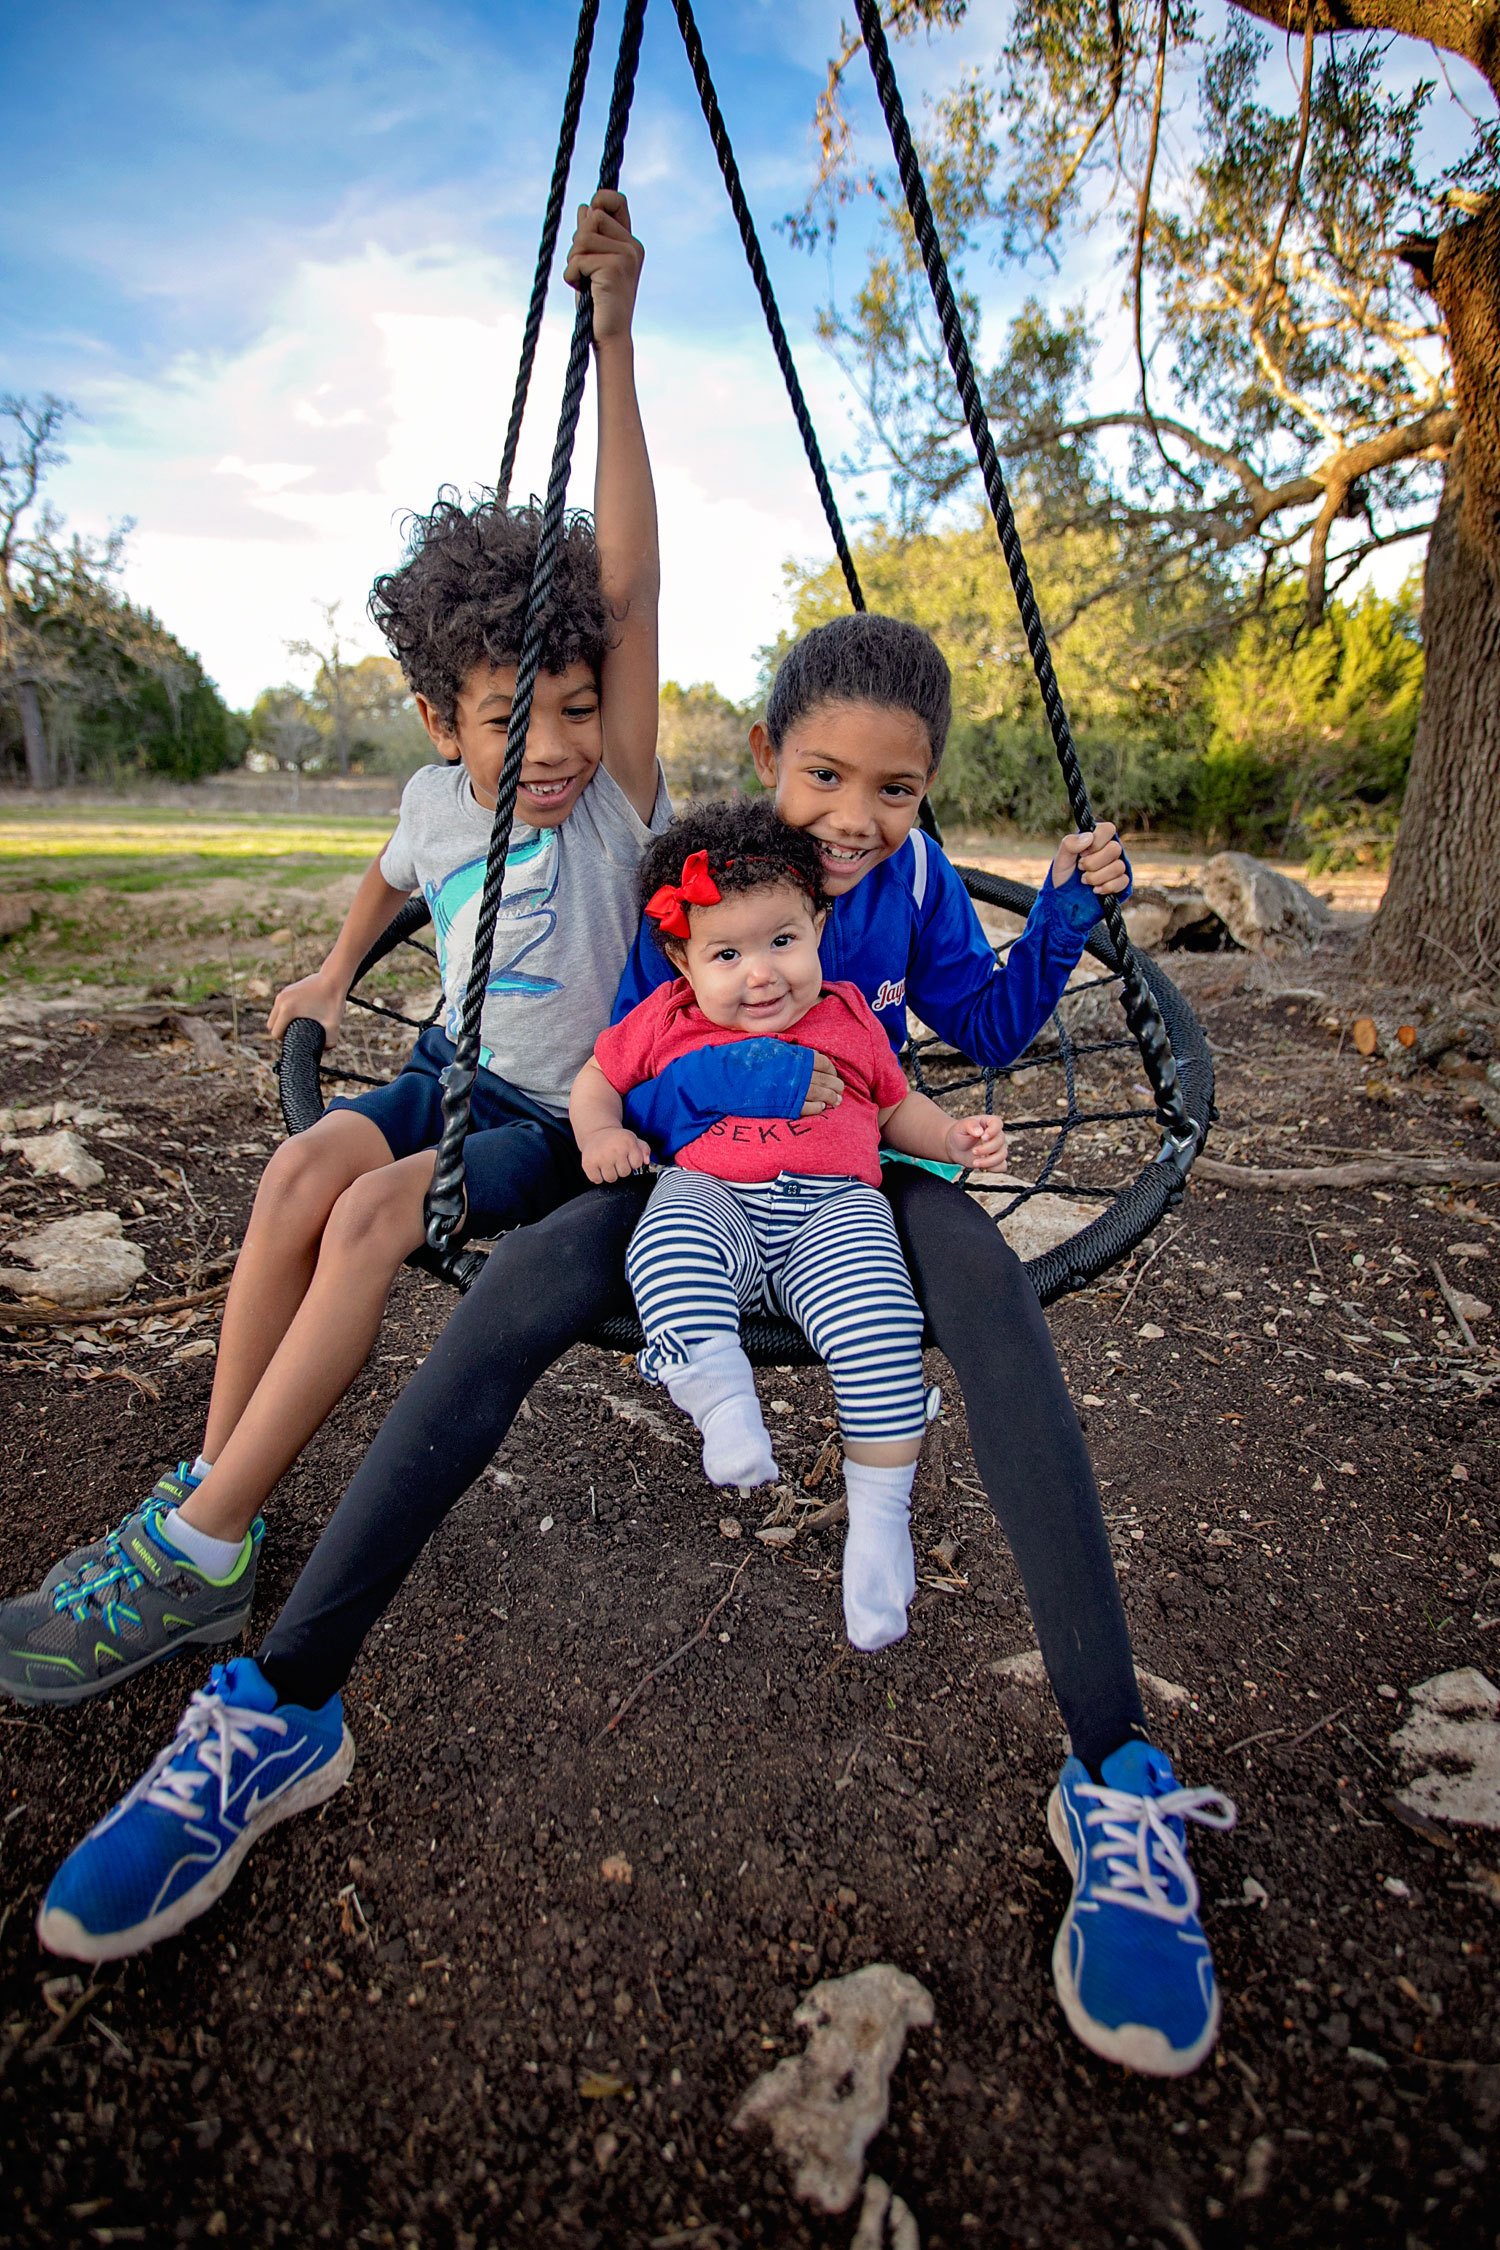 Baby that's 9 months old swinging with her two older siblings